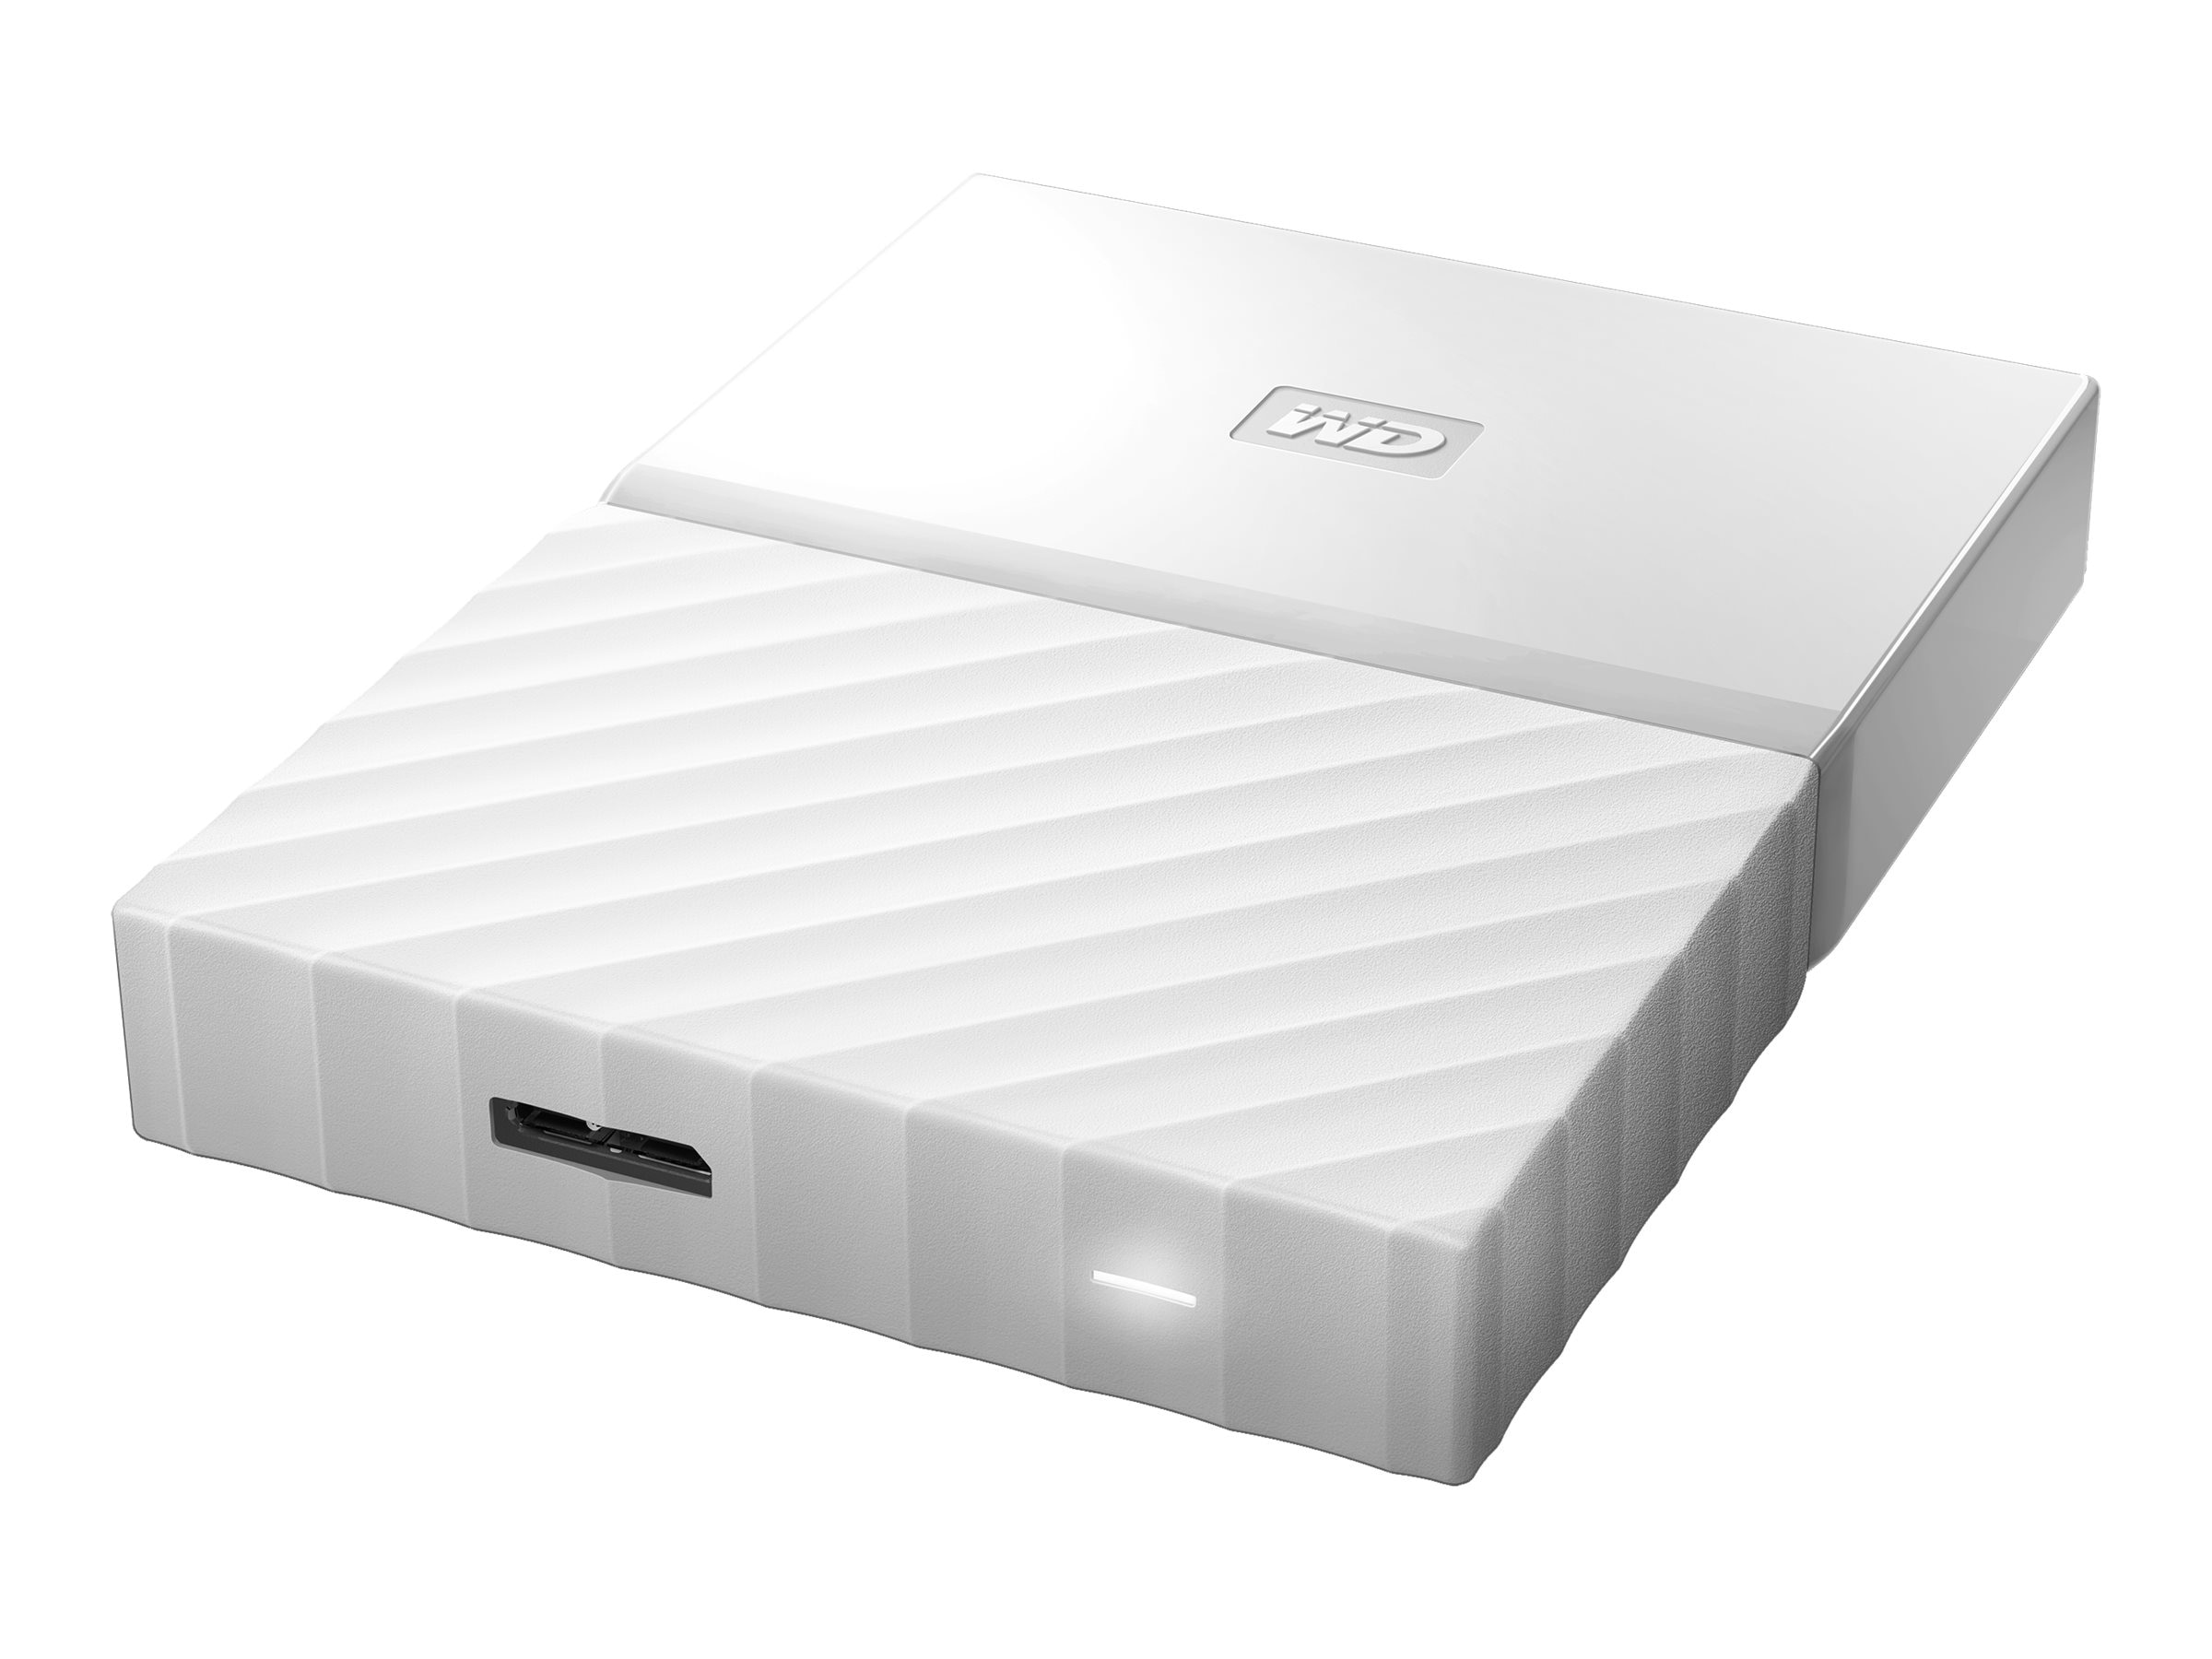 WD 1TB My Passport USB 3.0 Portable Hard Drive - White